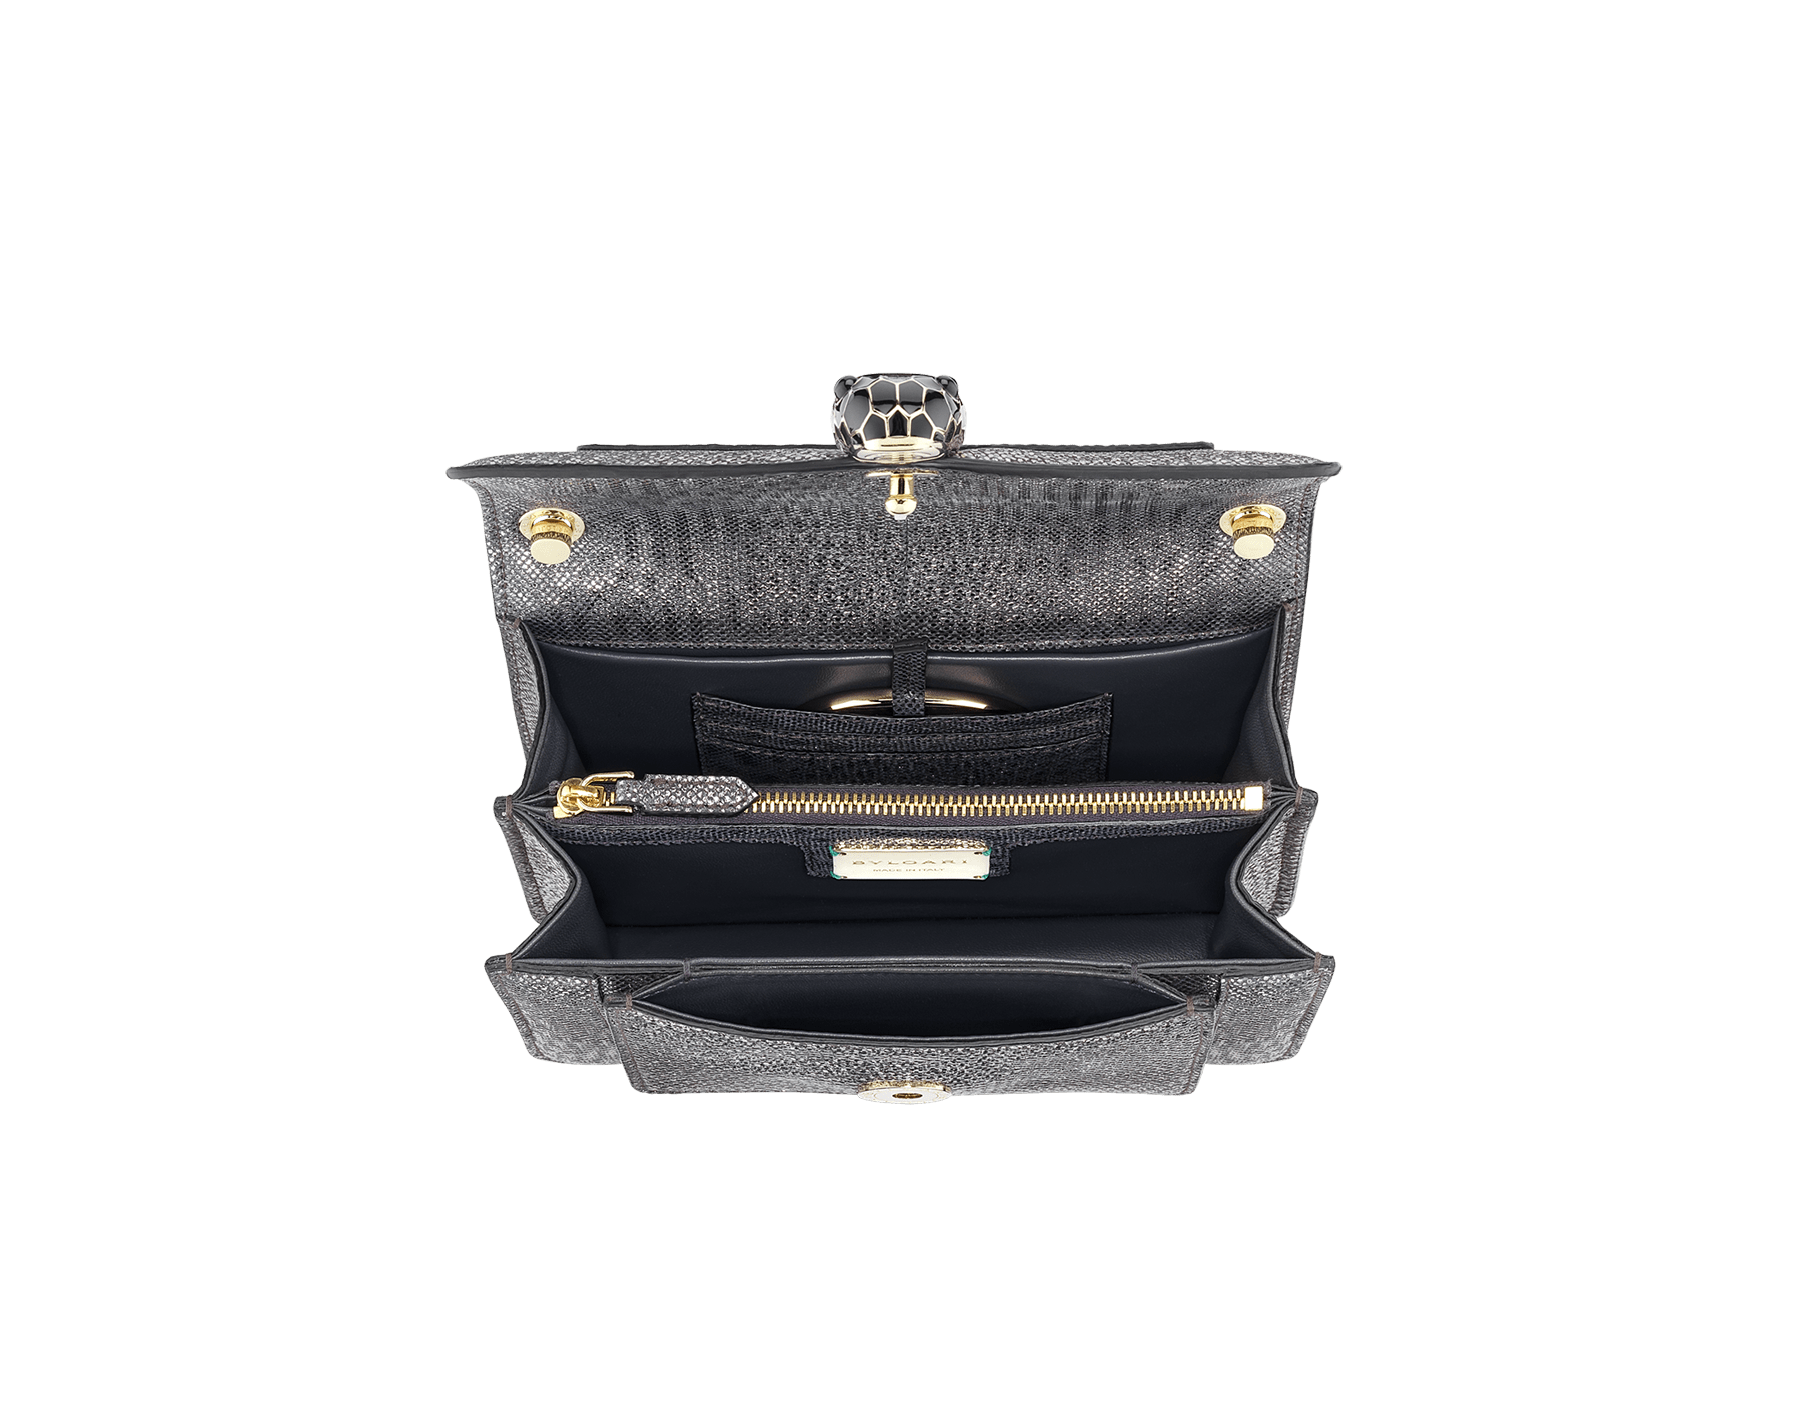 """Serpenti Forever"" crossbody bag in charcoal diamond metallic karung skin. Iconic snakehead closure in light gold plated brass enriched with black and glitter hawk's eye enamel and black onyx eyes. 1082-MK image 4"